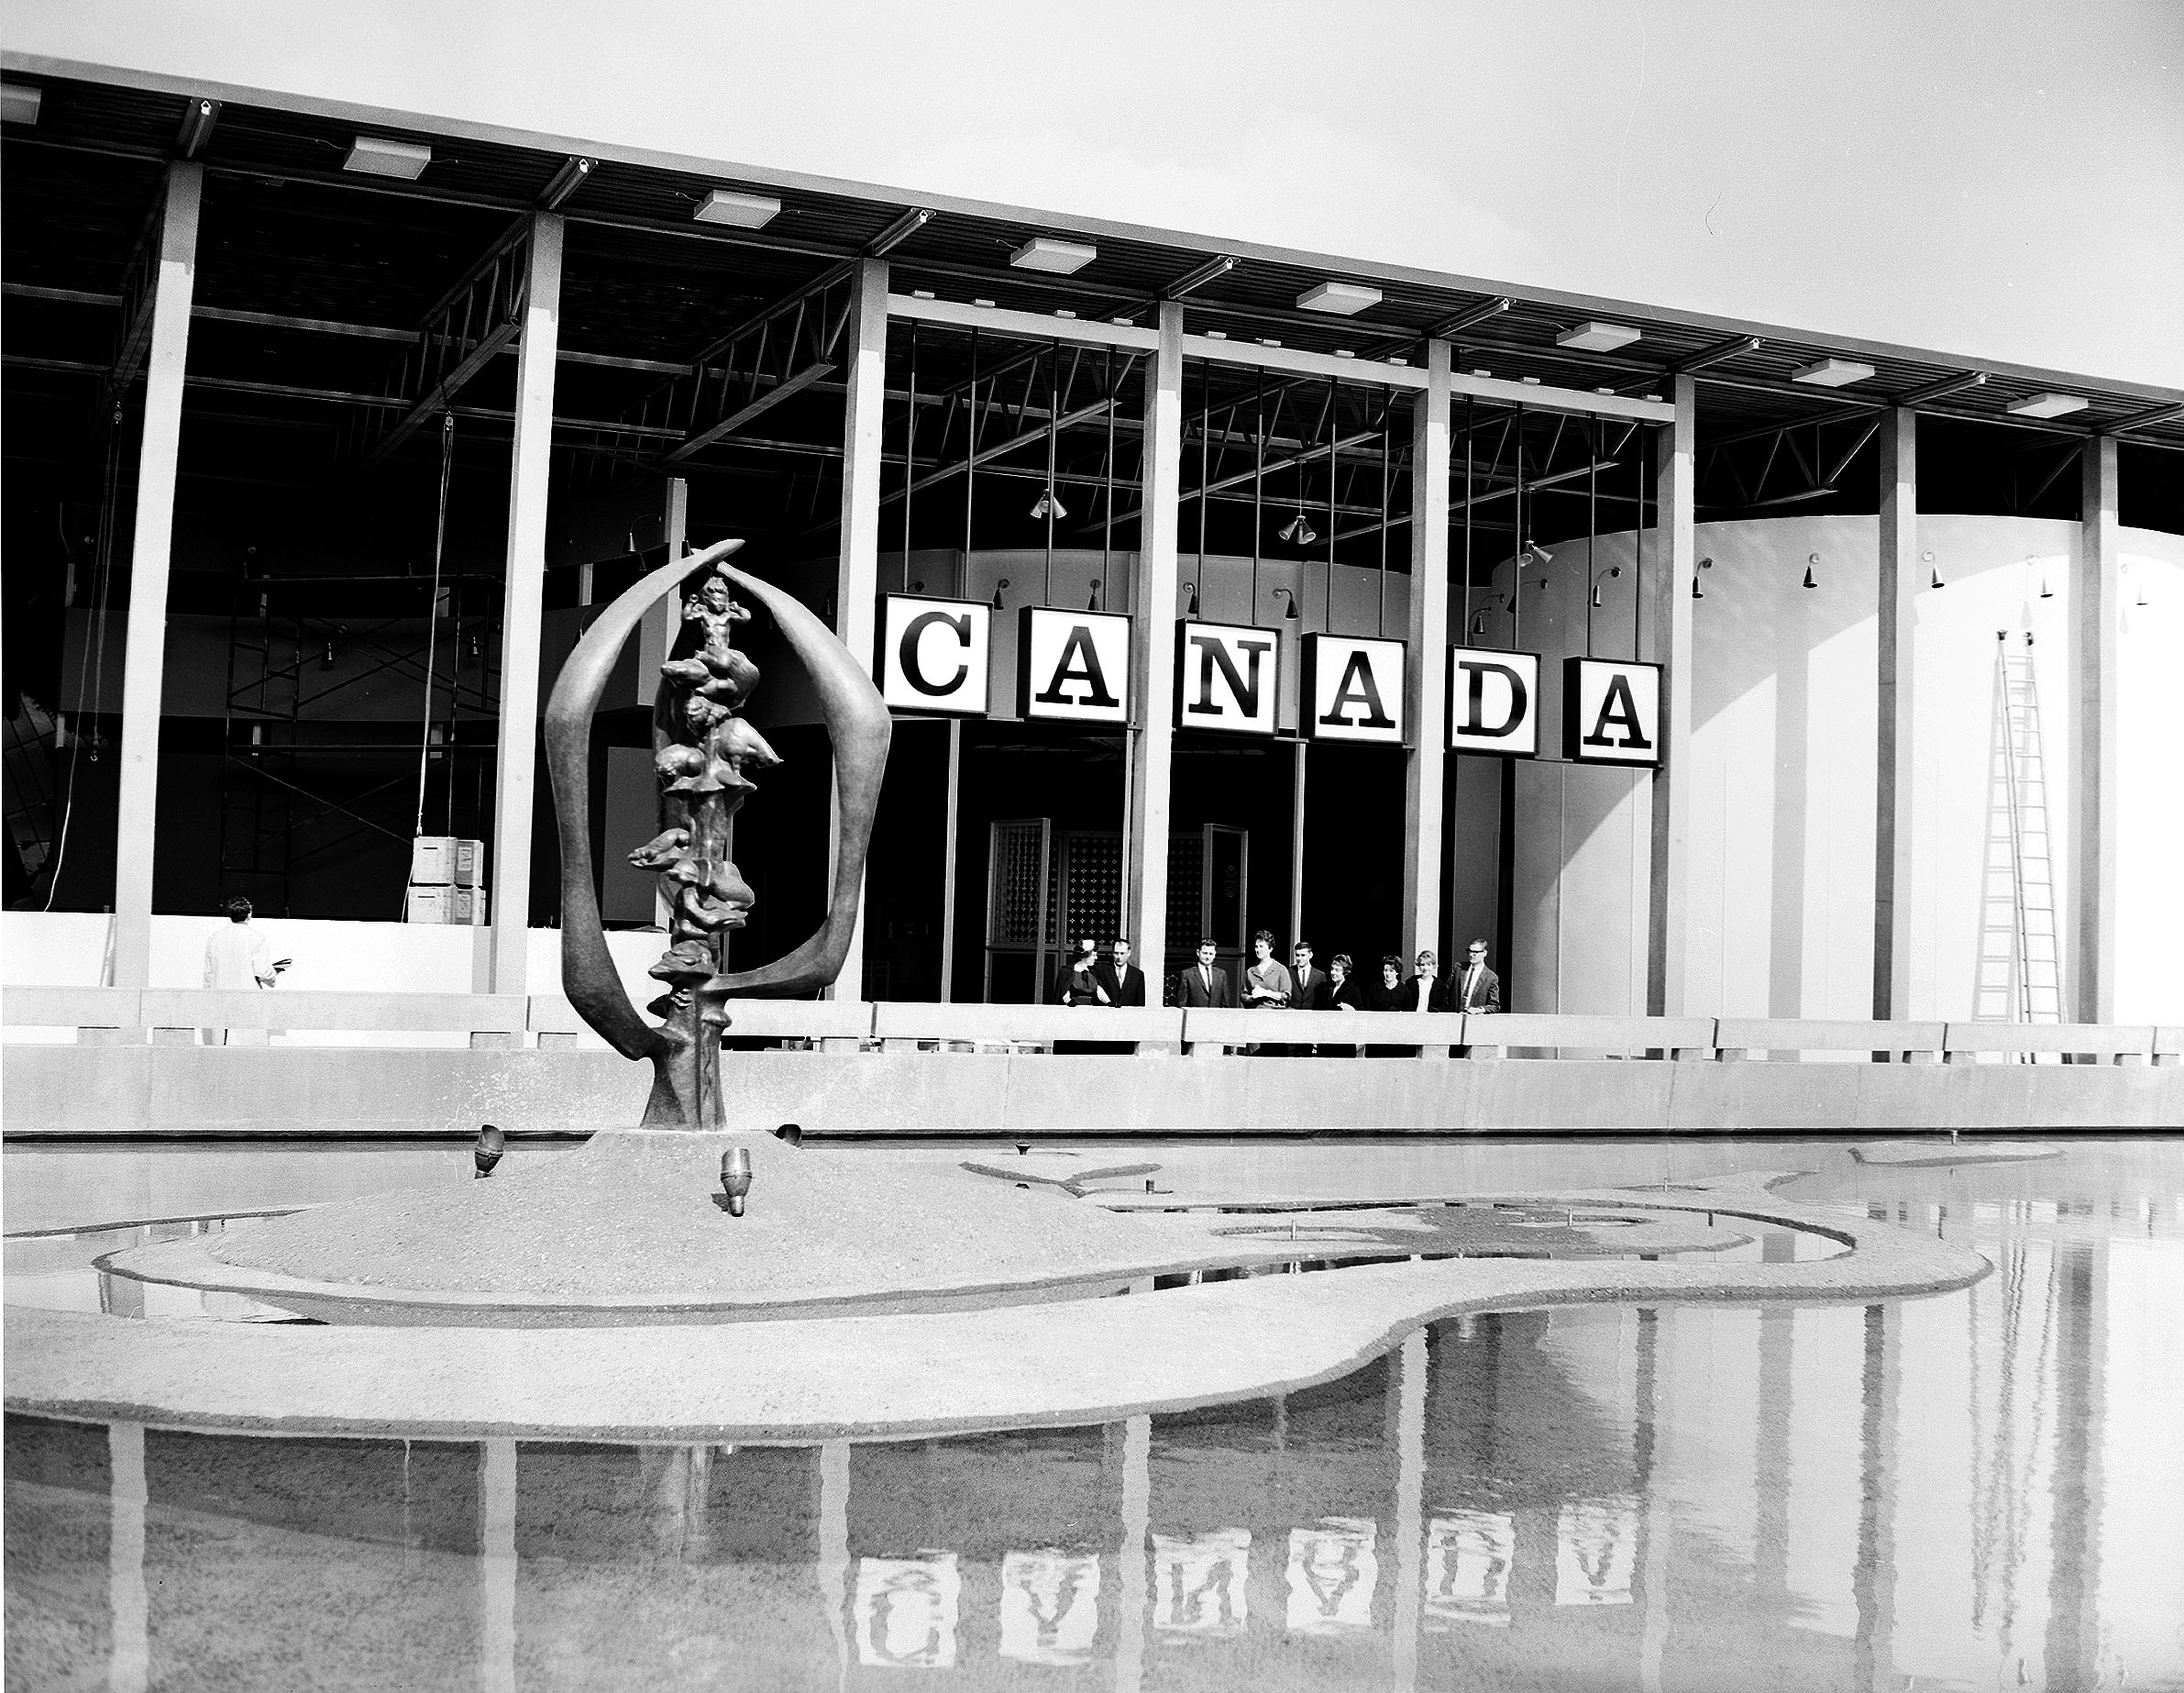 Canada Building at Century 21 Exposition, Seattle, Washington, 1962. This is now part of the Northwest Court of Seattle Center. The DuPen Fountain in the foreground is still there, although it has been somewhat reconfigured.